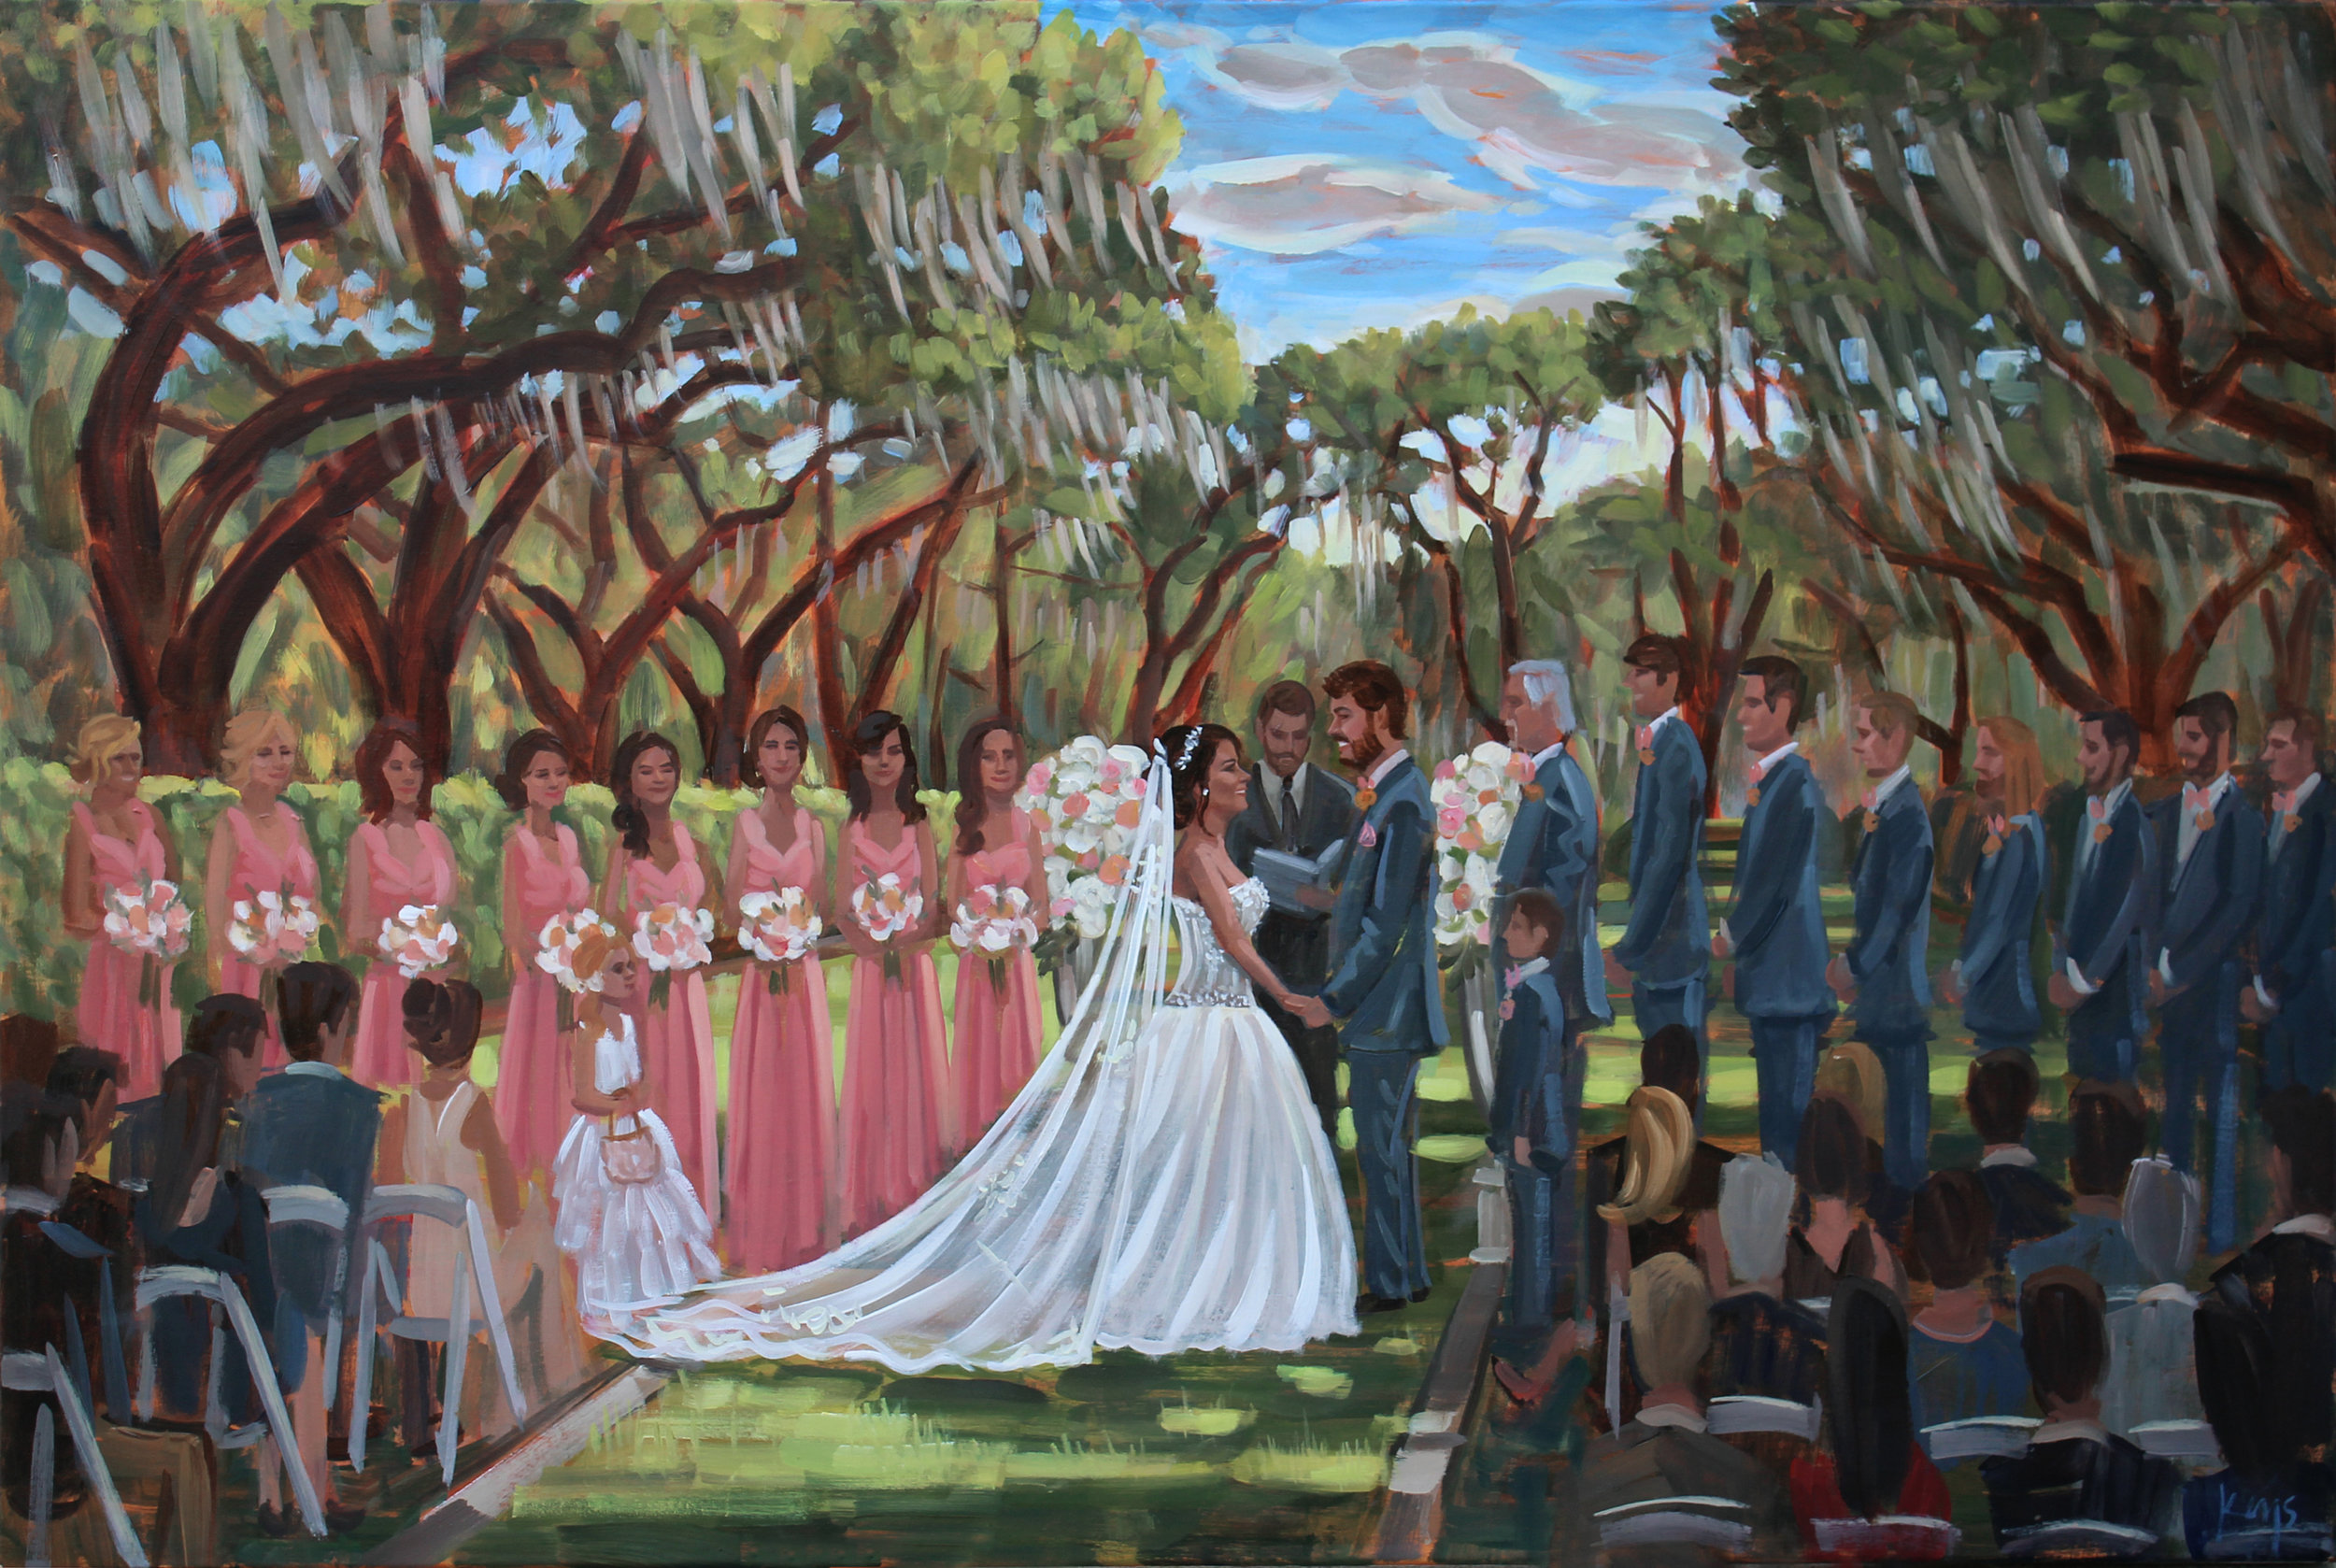 Live Wedding Painter, Ben Keys, captured Amber + Justin's gorgeous ceremony under the Avenue of Oaks at The Ford Plantation!